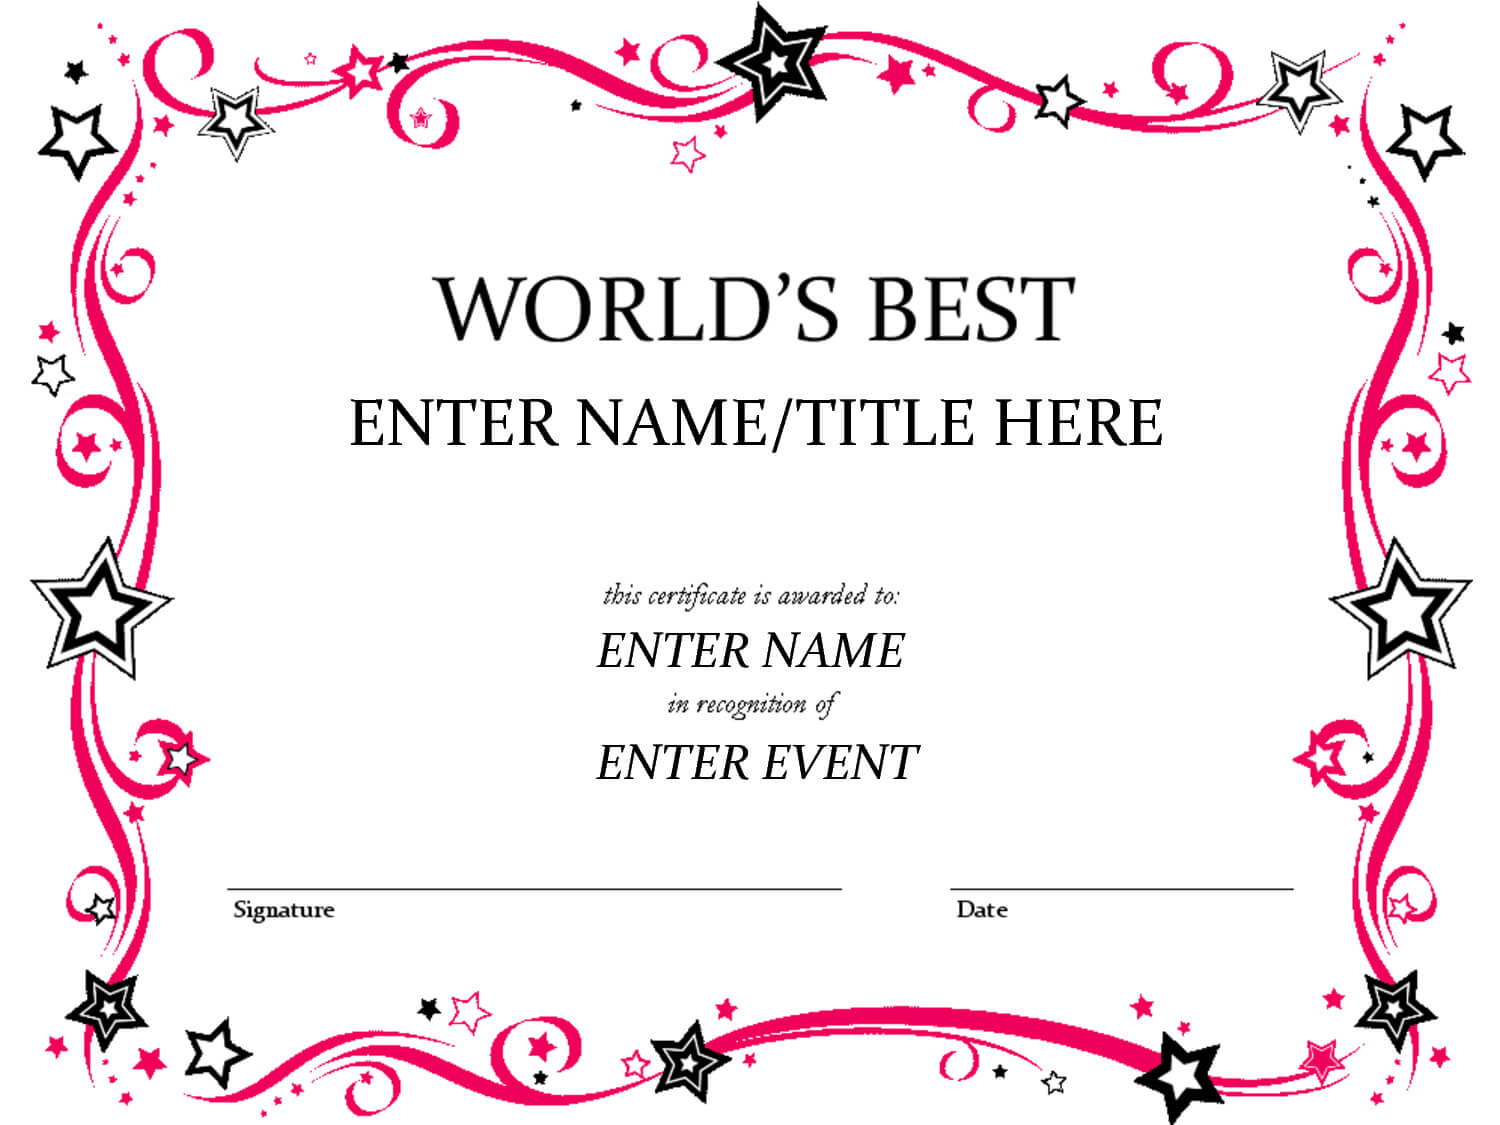 Free Funny Award Certificates Templates | Worlds Best Custom within Free Funny Certificate Templates For Word